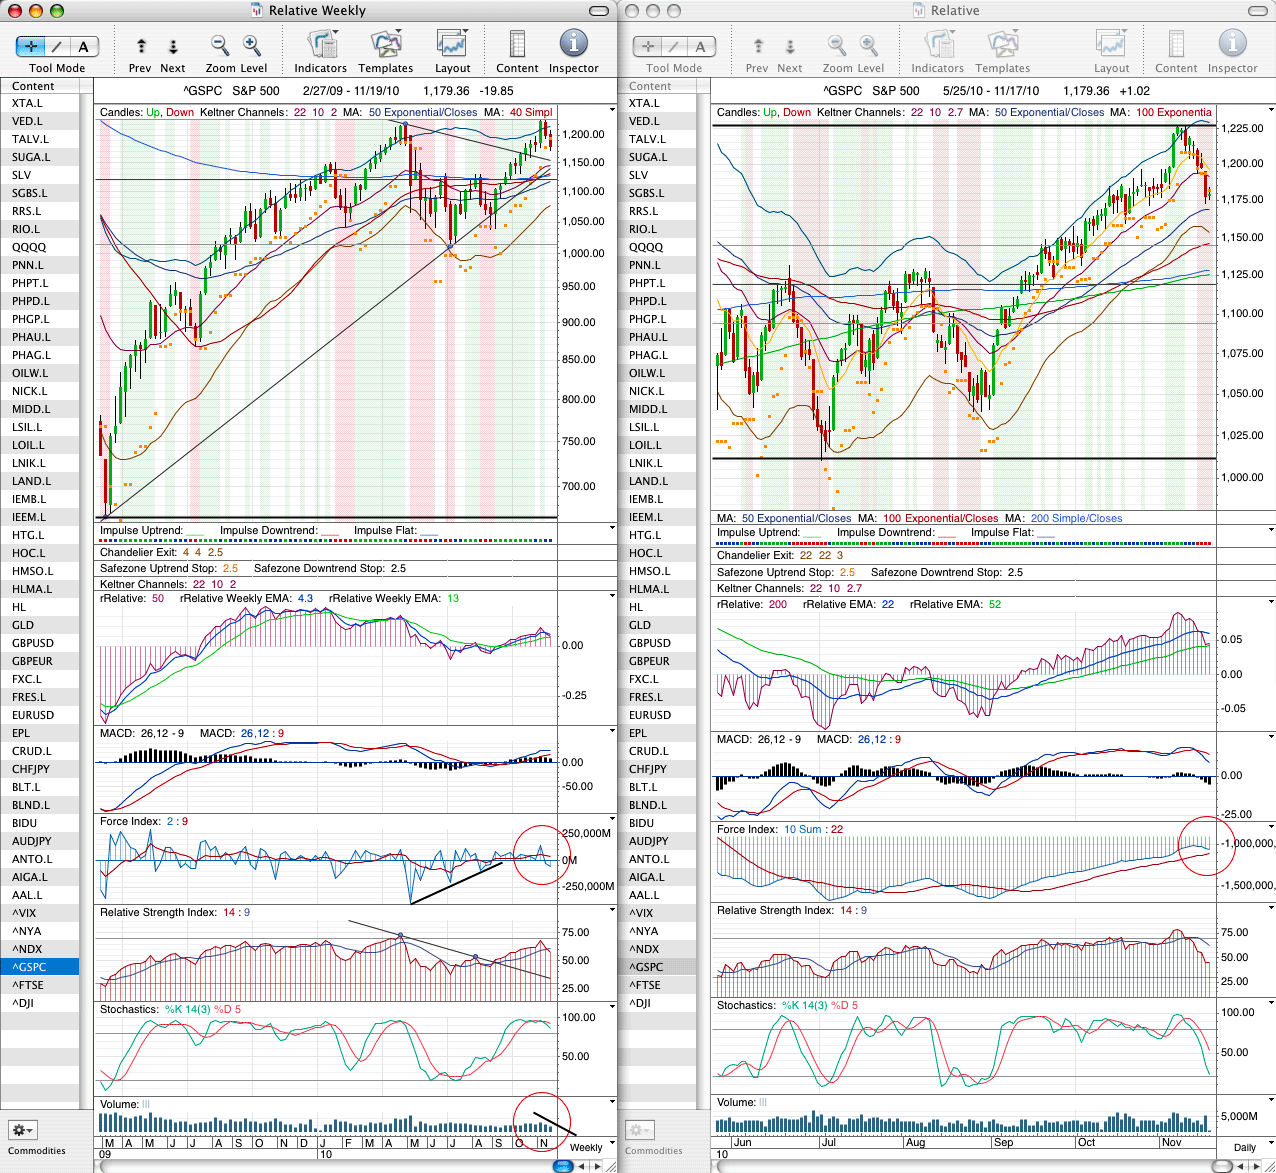 sp500_17-11-10.png